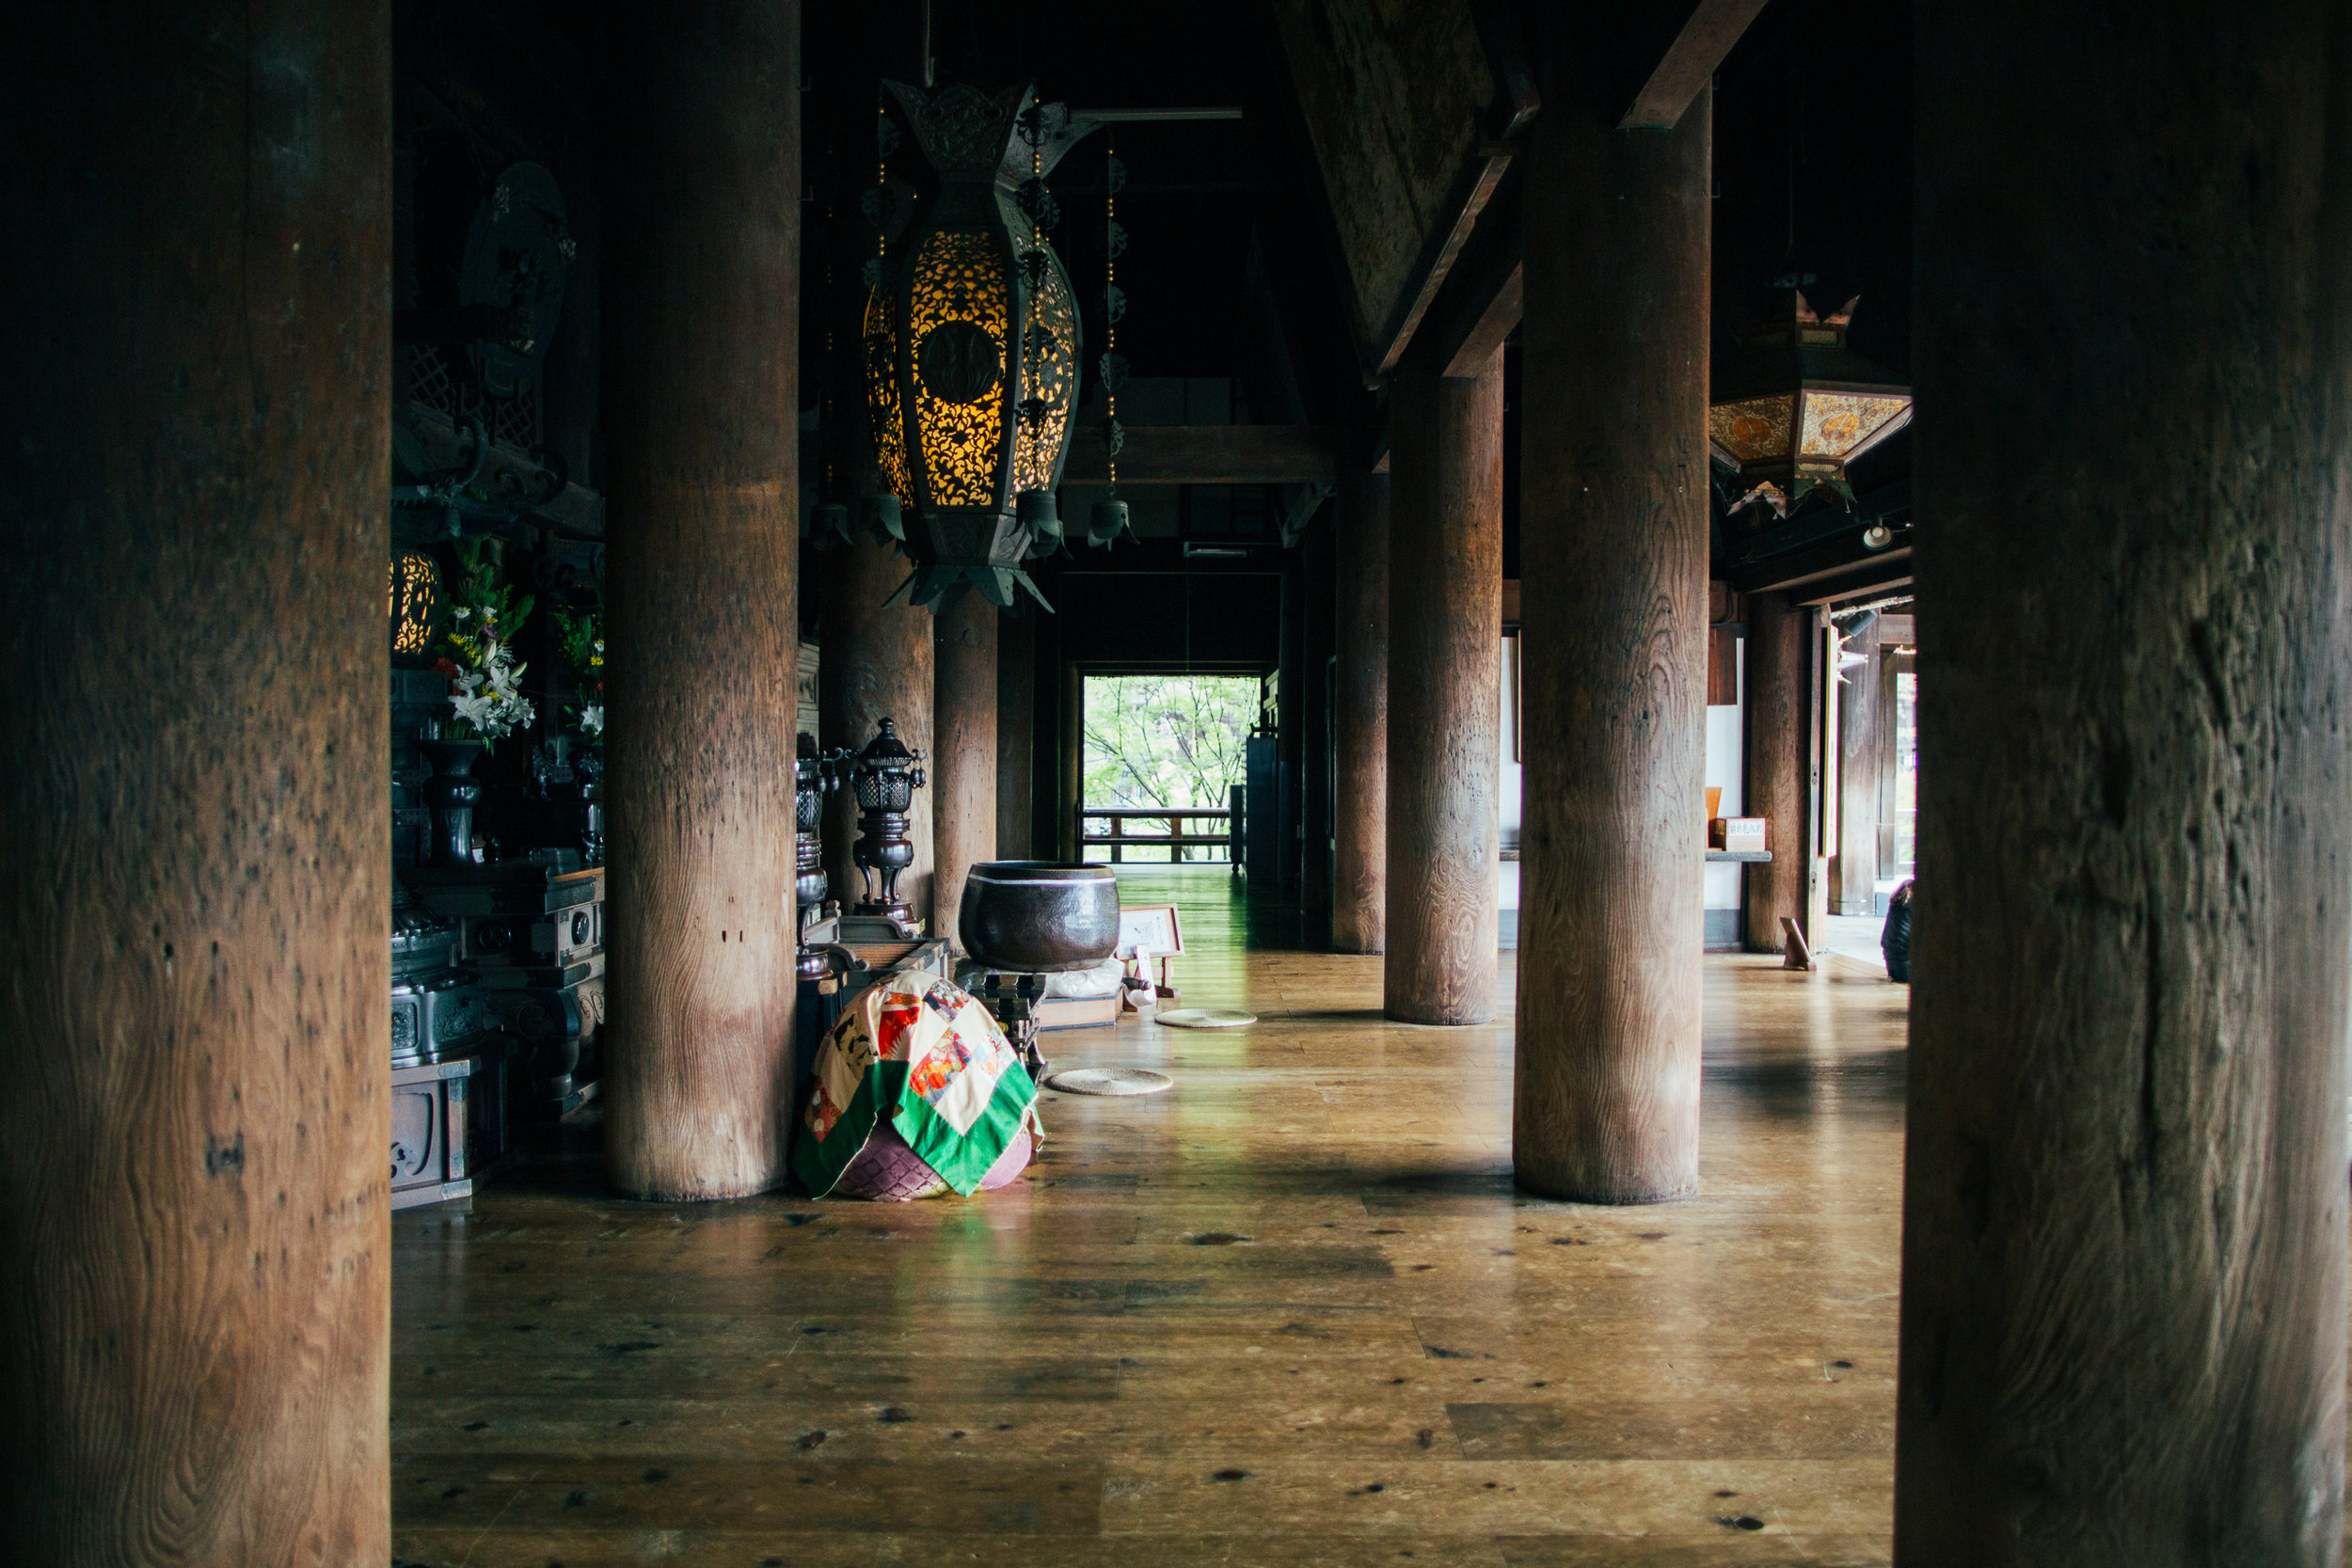 Inside the main building of Kiyomizu-dera. We got there early, but not early enough as I only had time to take this shot before the crowds started pouring in.